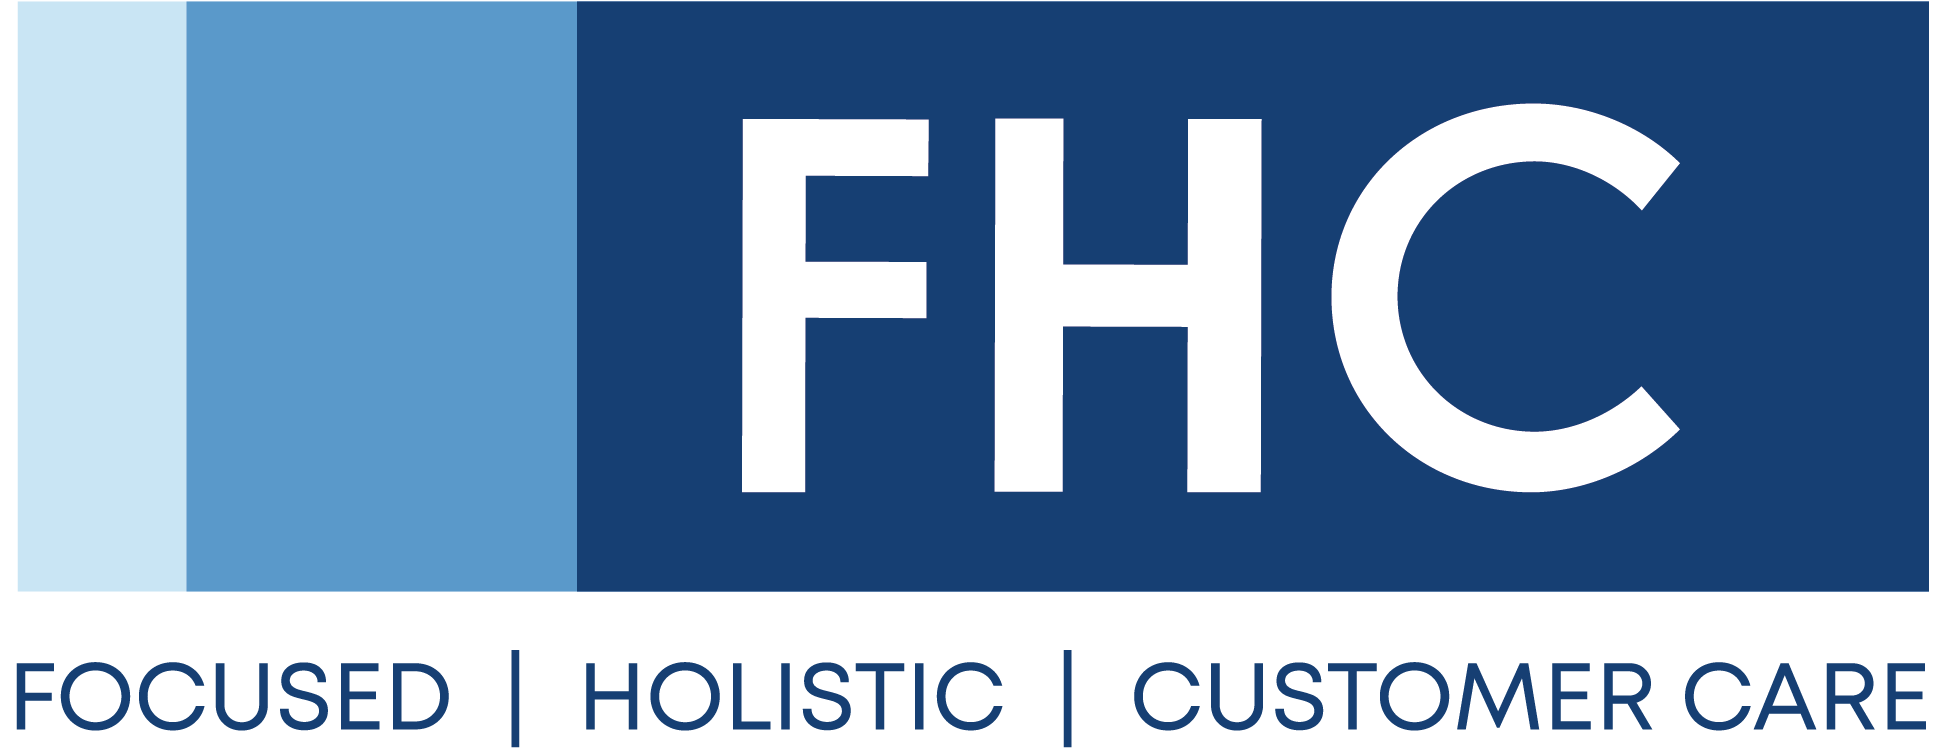 A blue logo with white text  Description automatically generated with low confidence